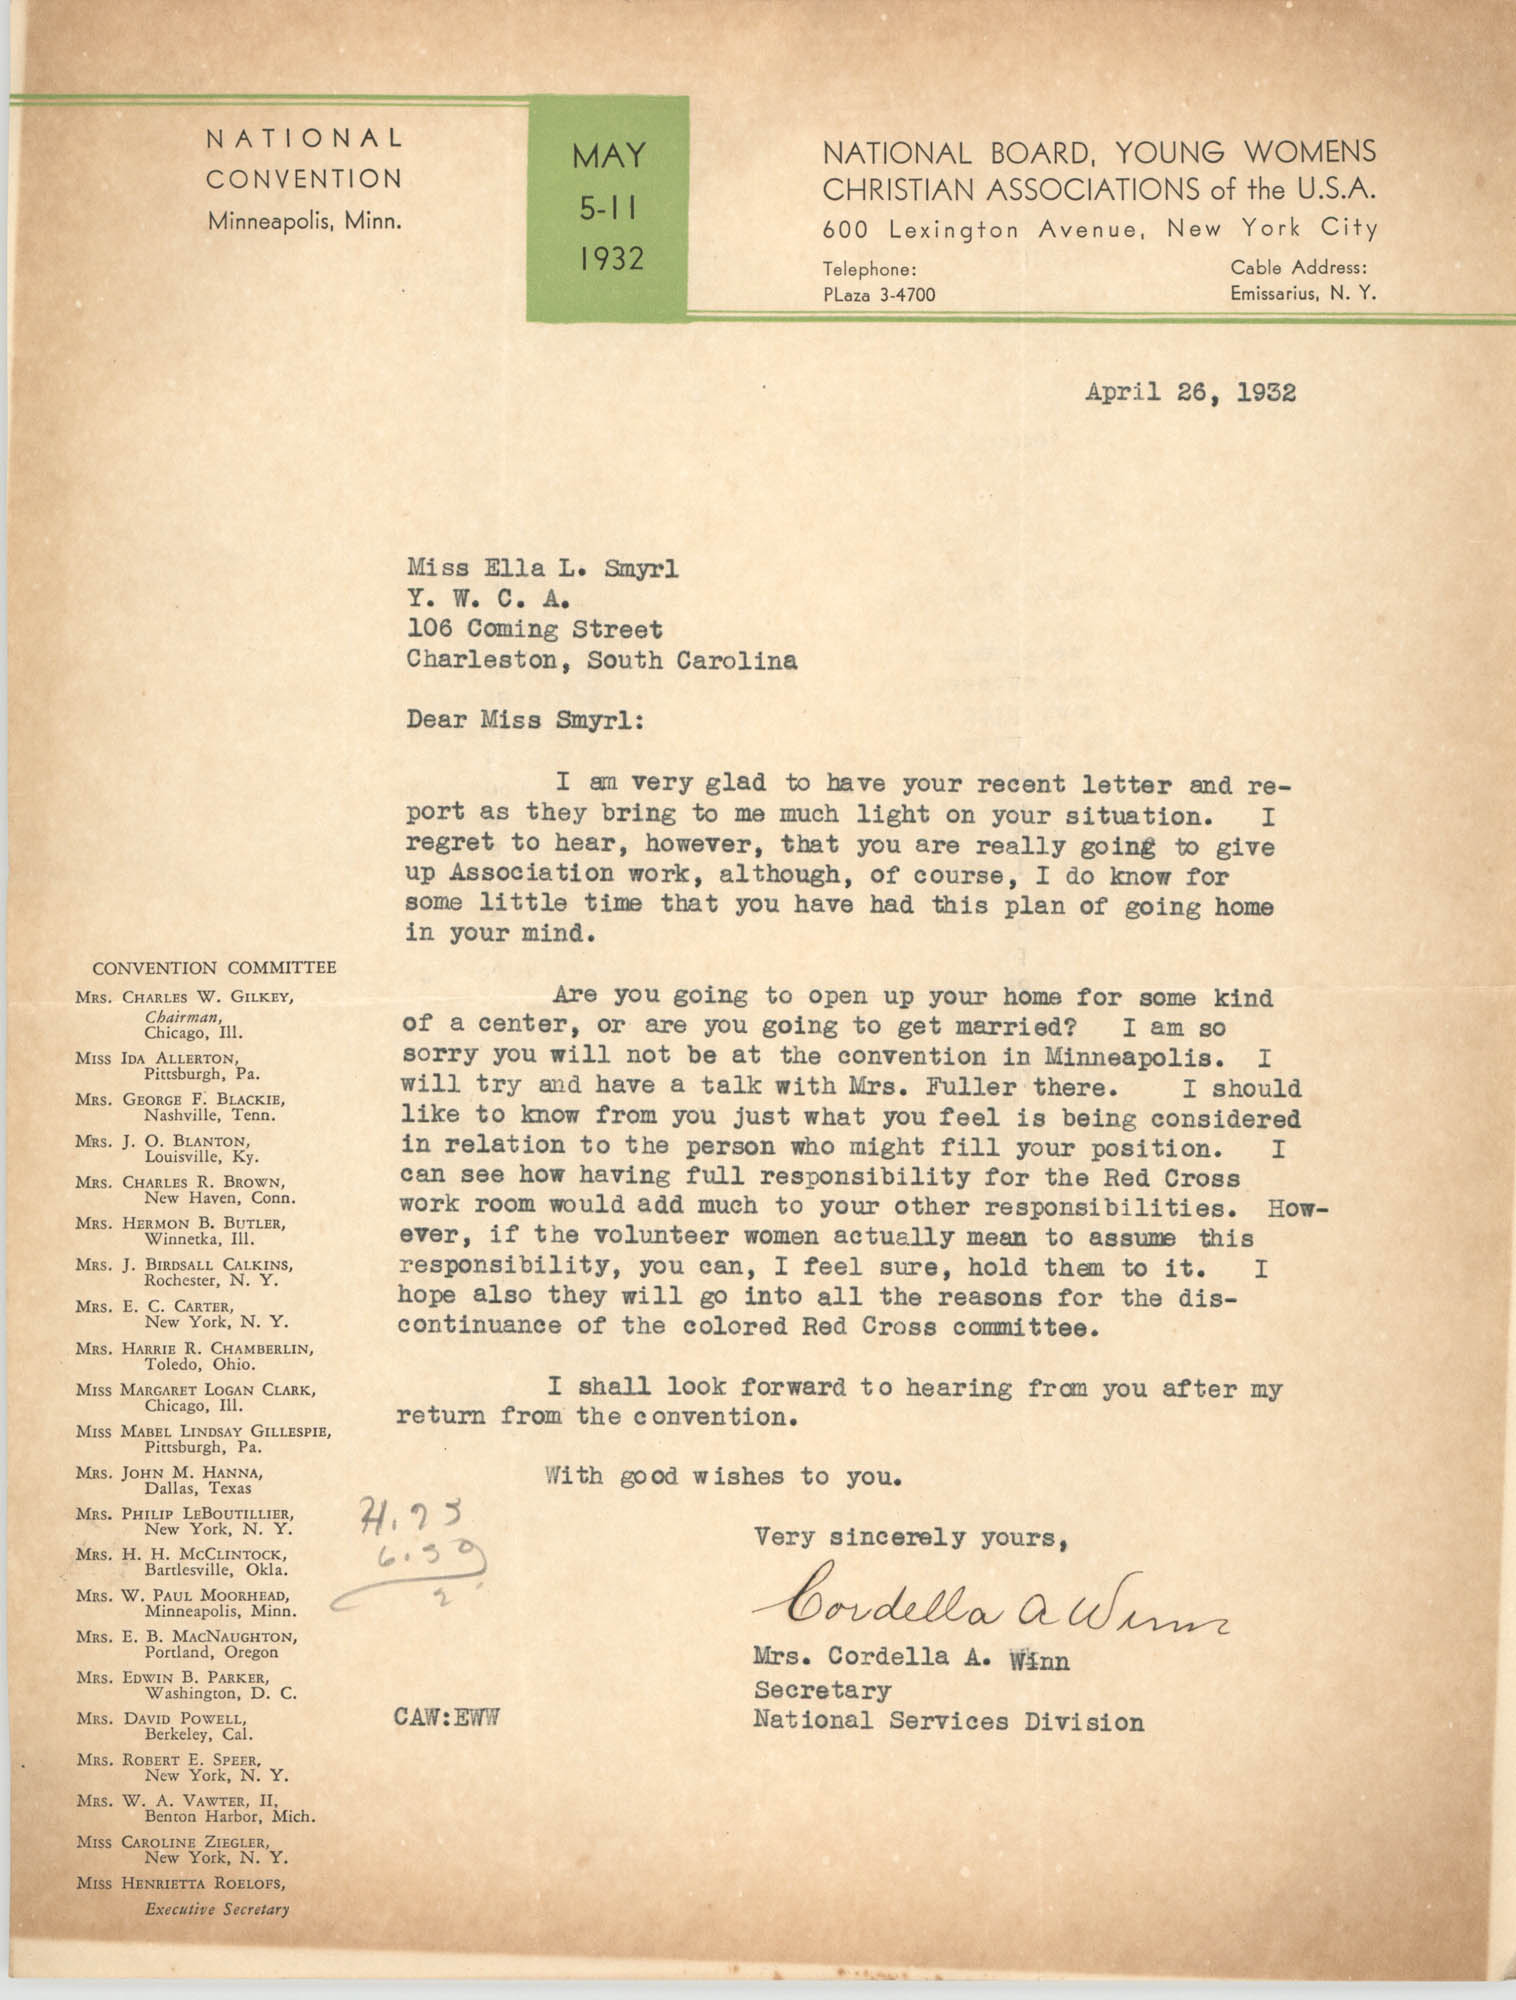 Letter from Cordella A. Winn to Ella L. Smyrl, April 26, 1932